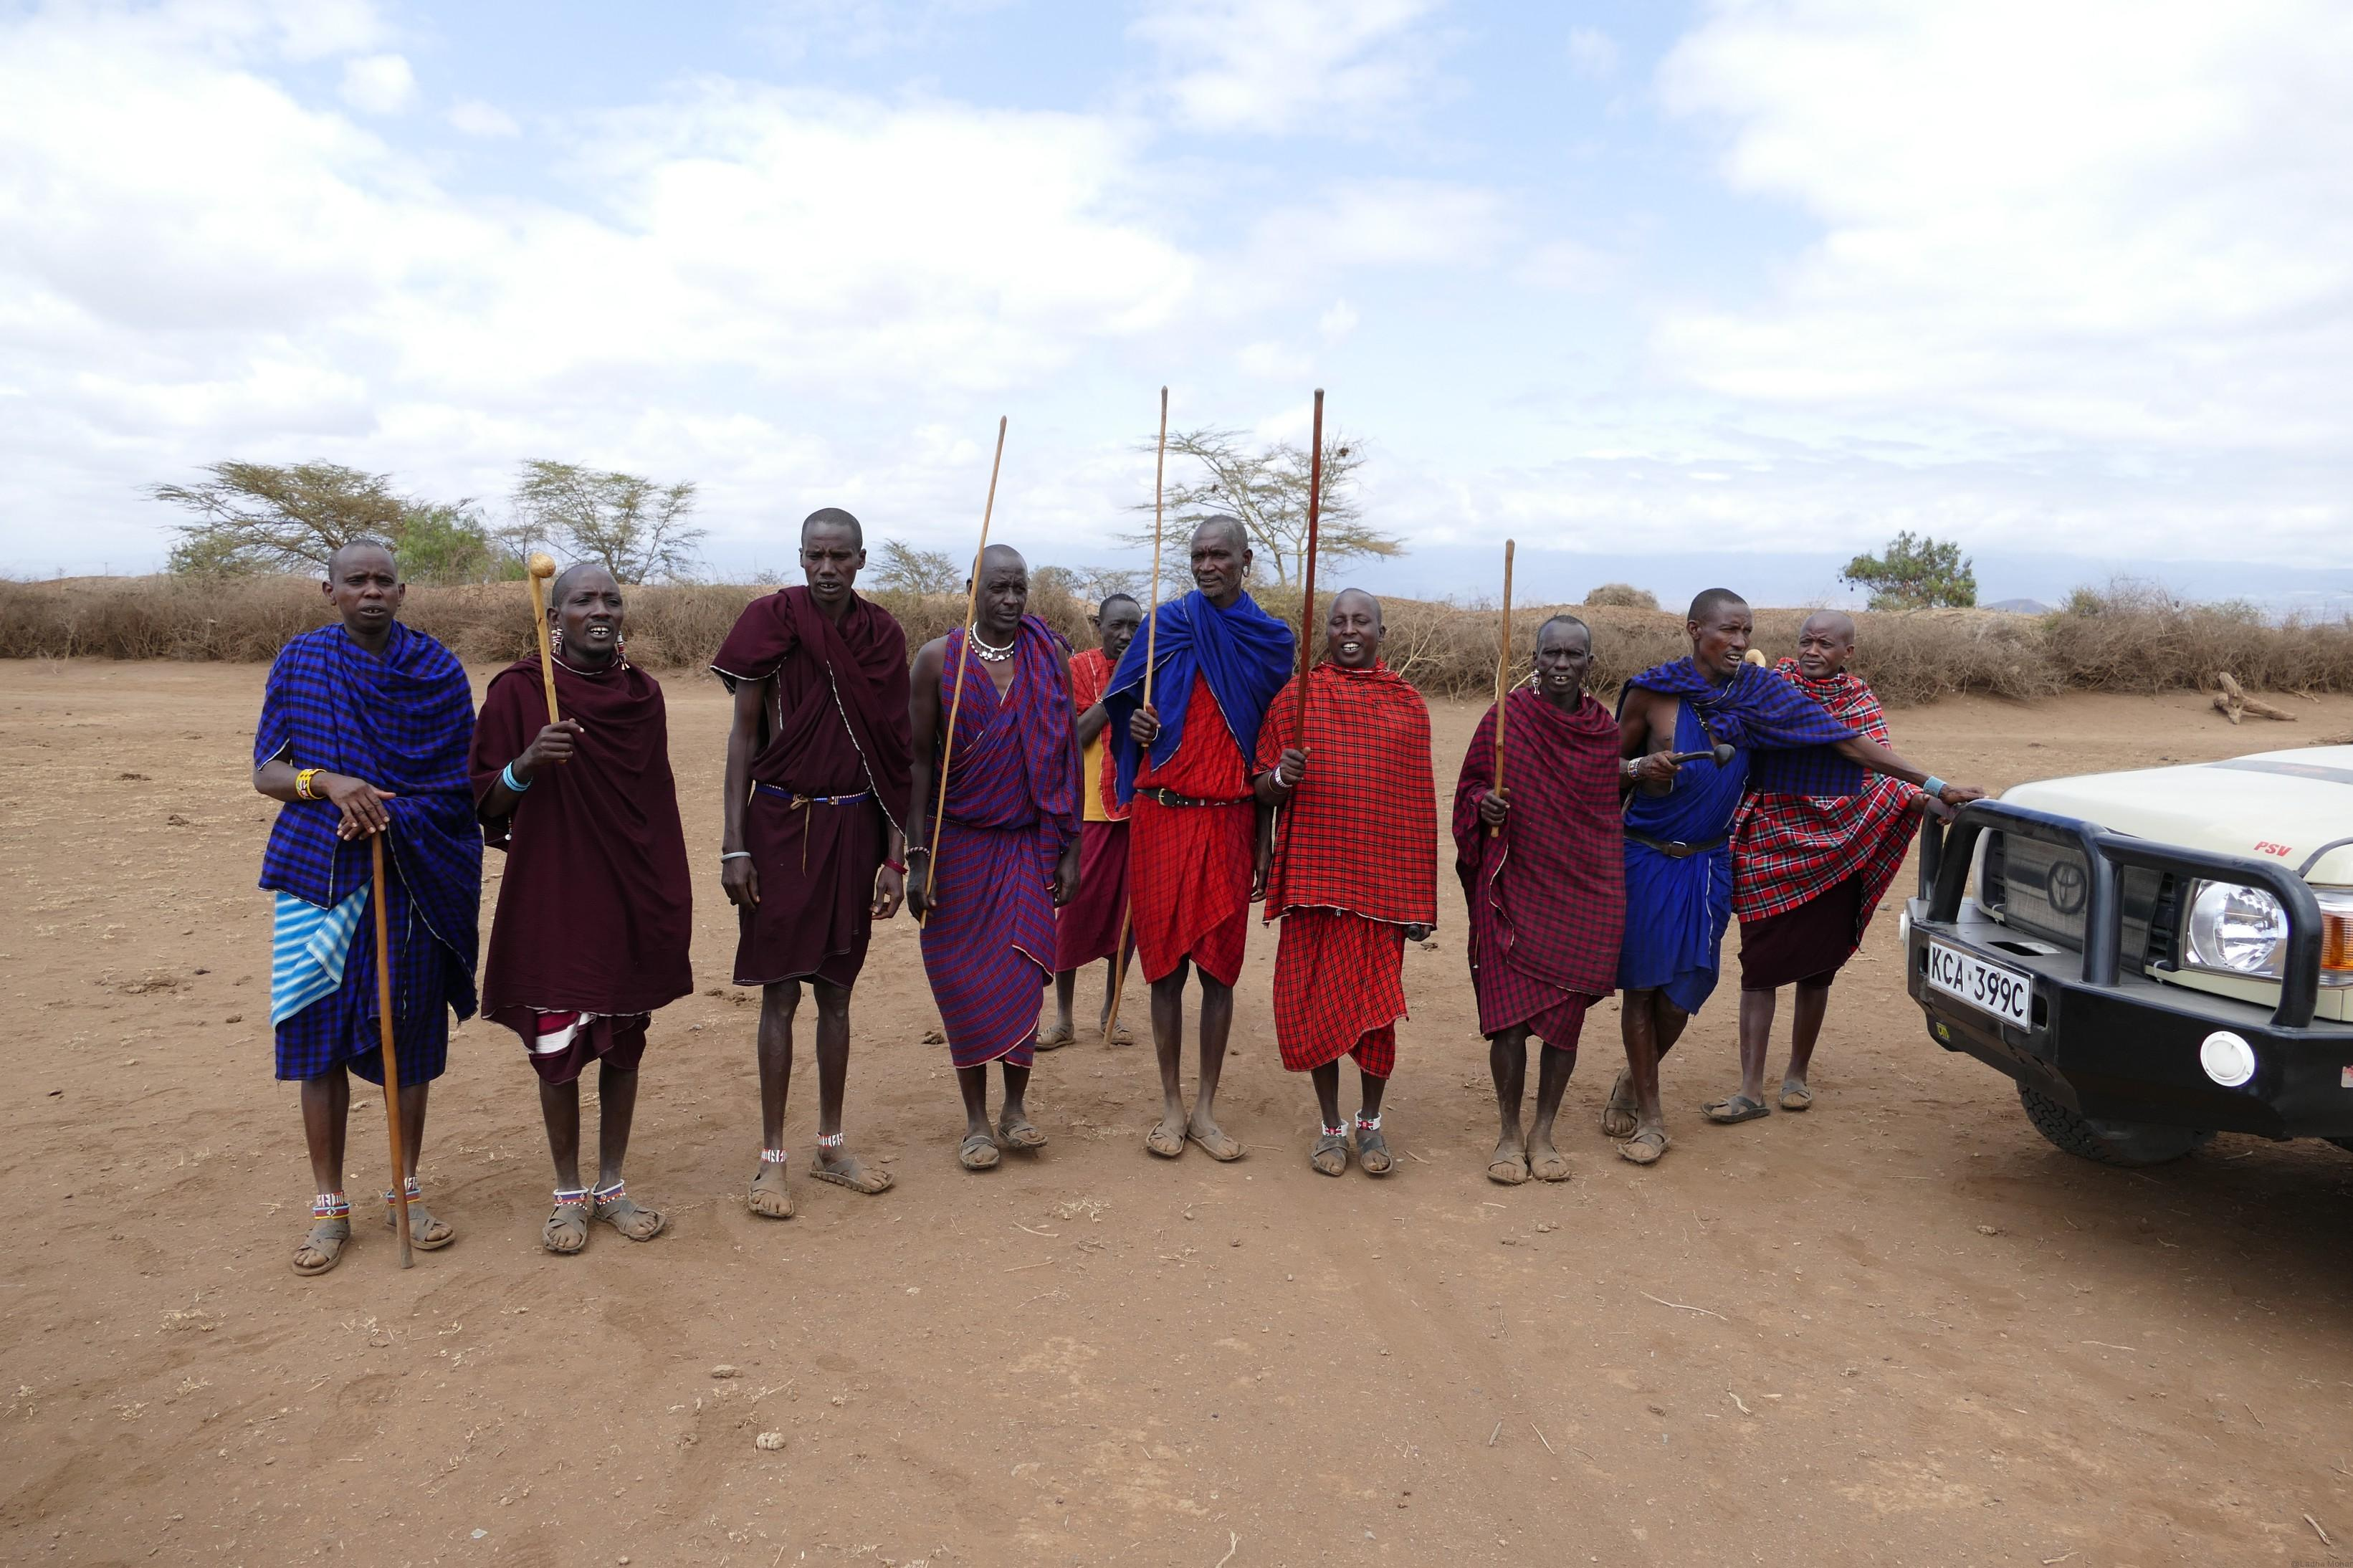 Farewell Song by Maasai Men when we left the village